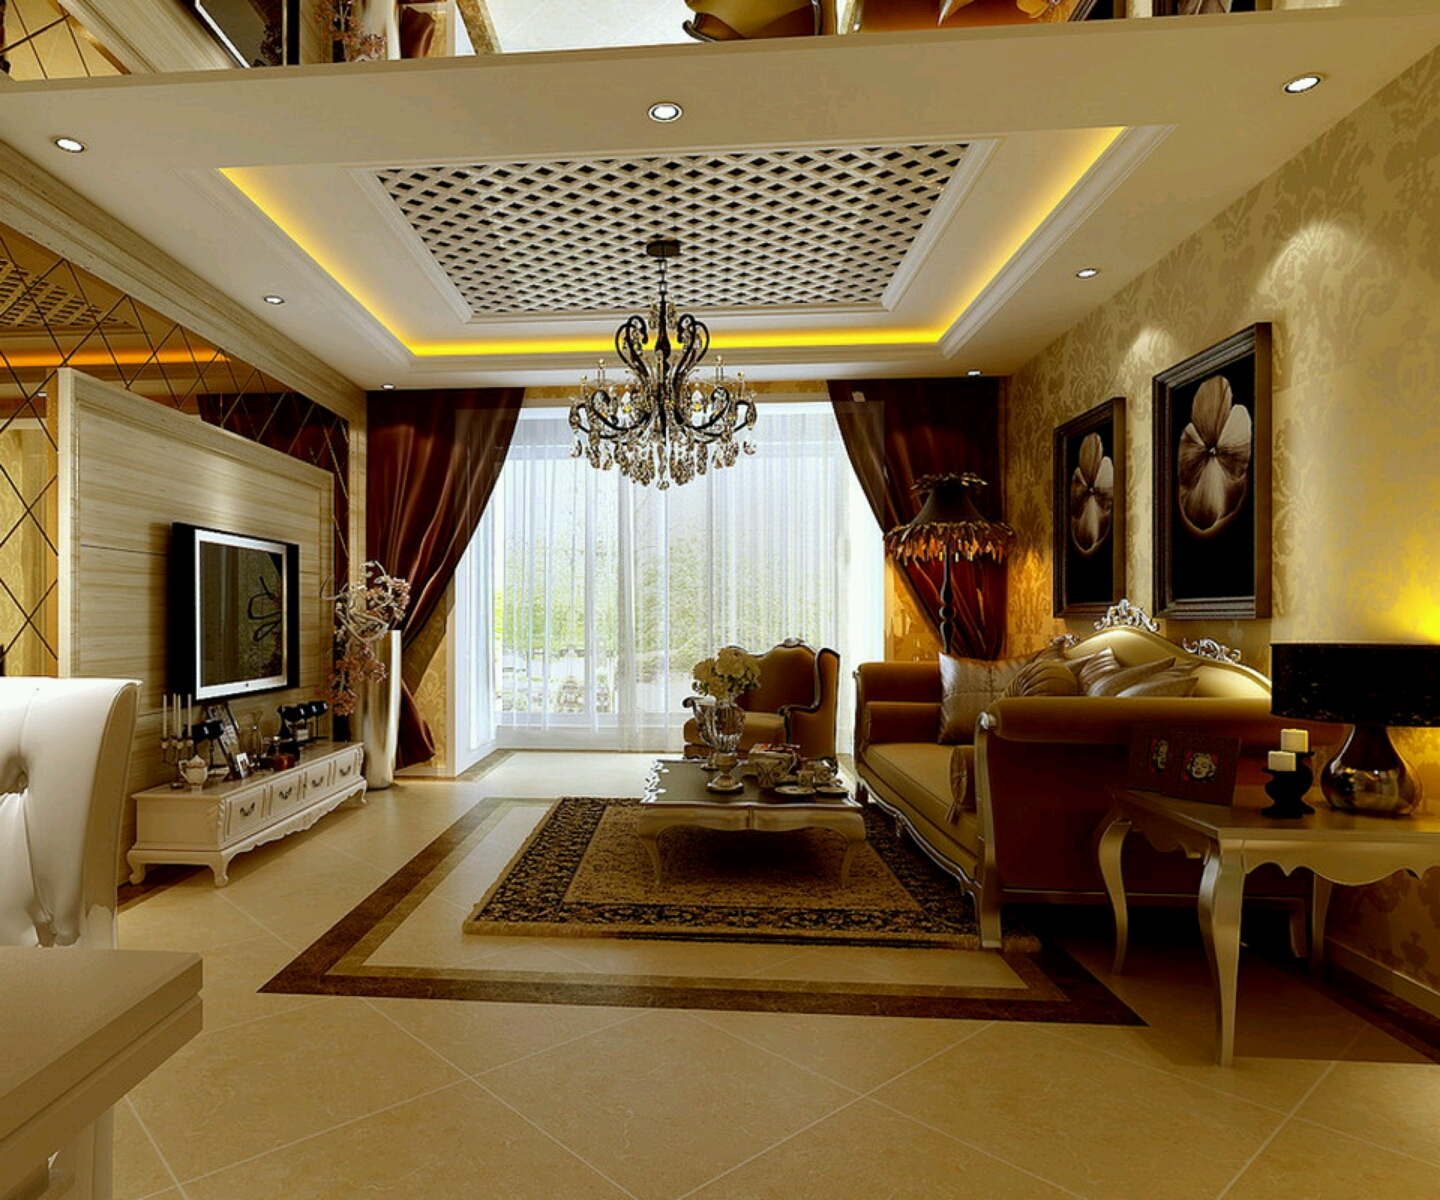 New home designs latest luxury homes interior decoration for Interior decoration designs living room